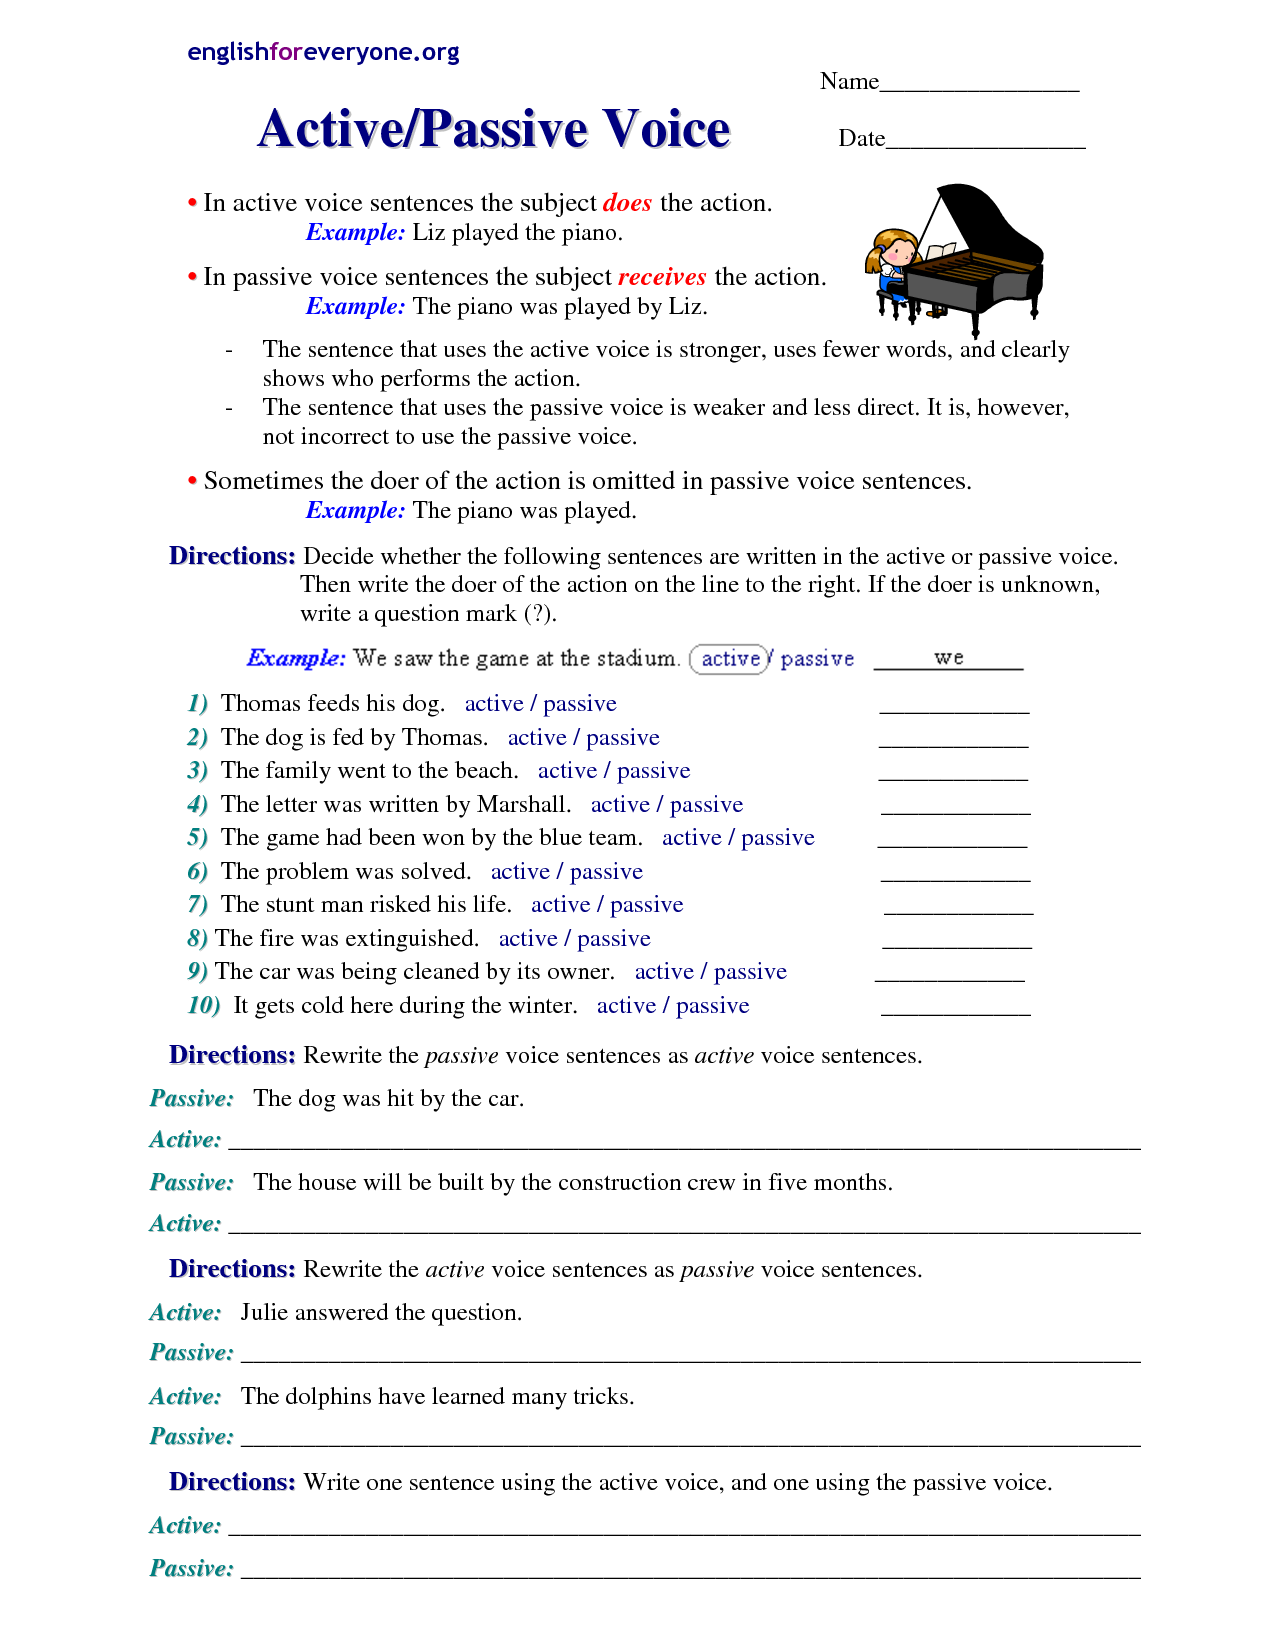 Worksheets Active And Passive Voice Worksheets With Answers Pdf 1000 images about passive voice on pinterest action verbs 5th grade writing and grammar lessons